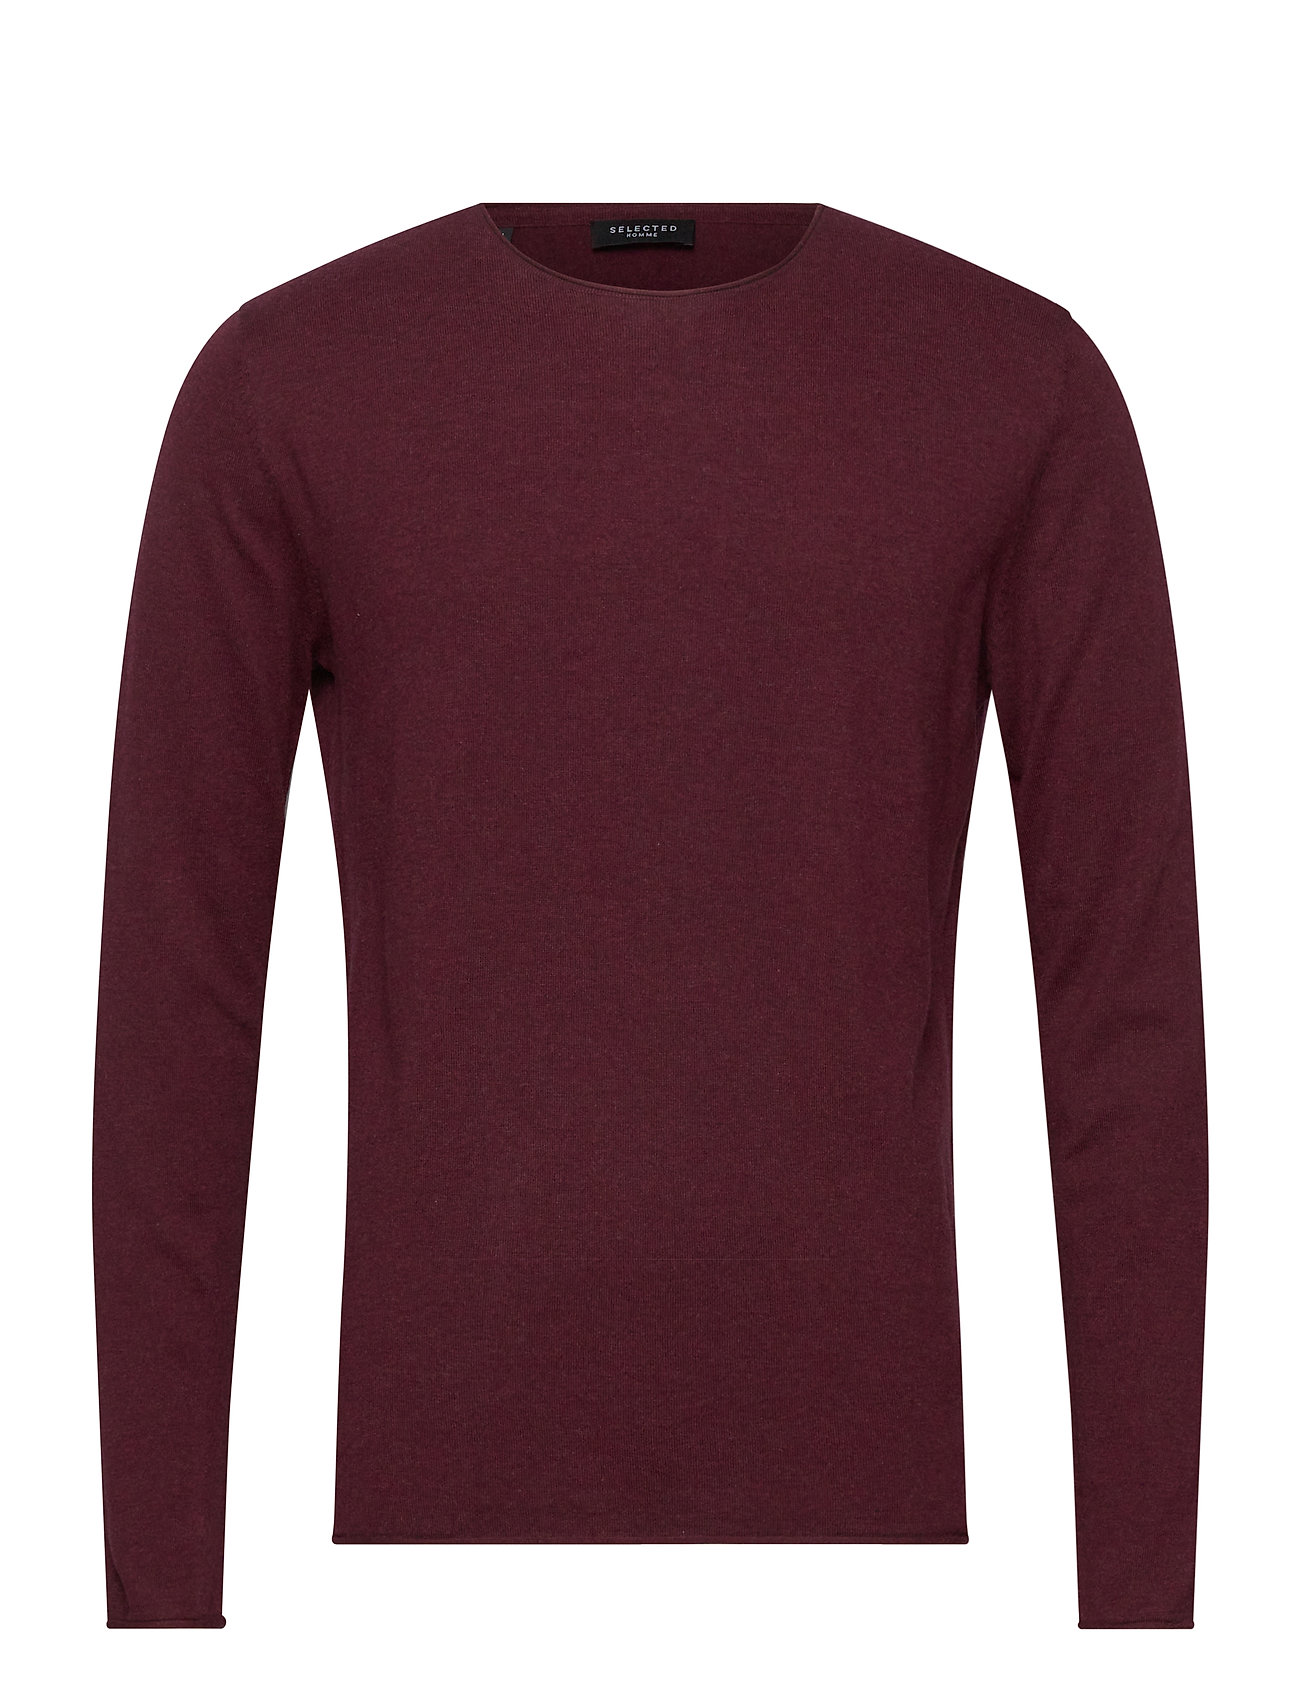 Selected Homme SHDDOME CREW NECK NOOS - WINETASTING